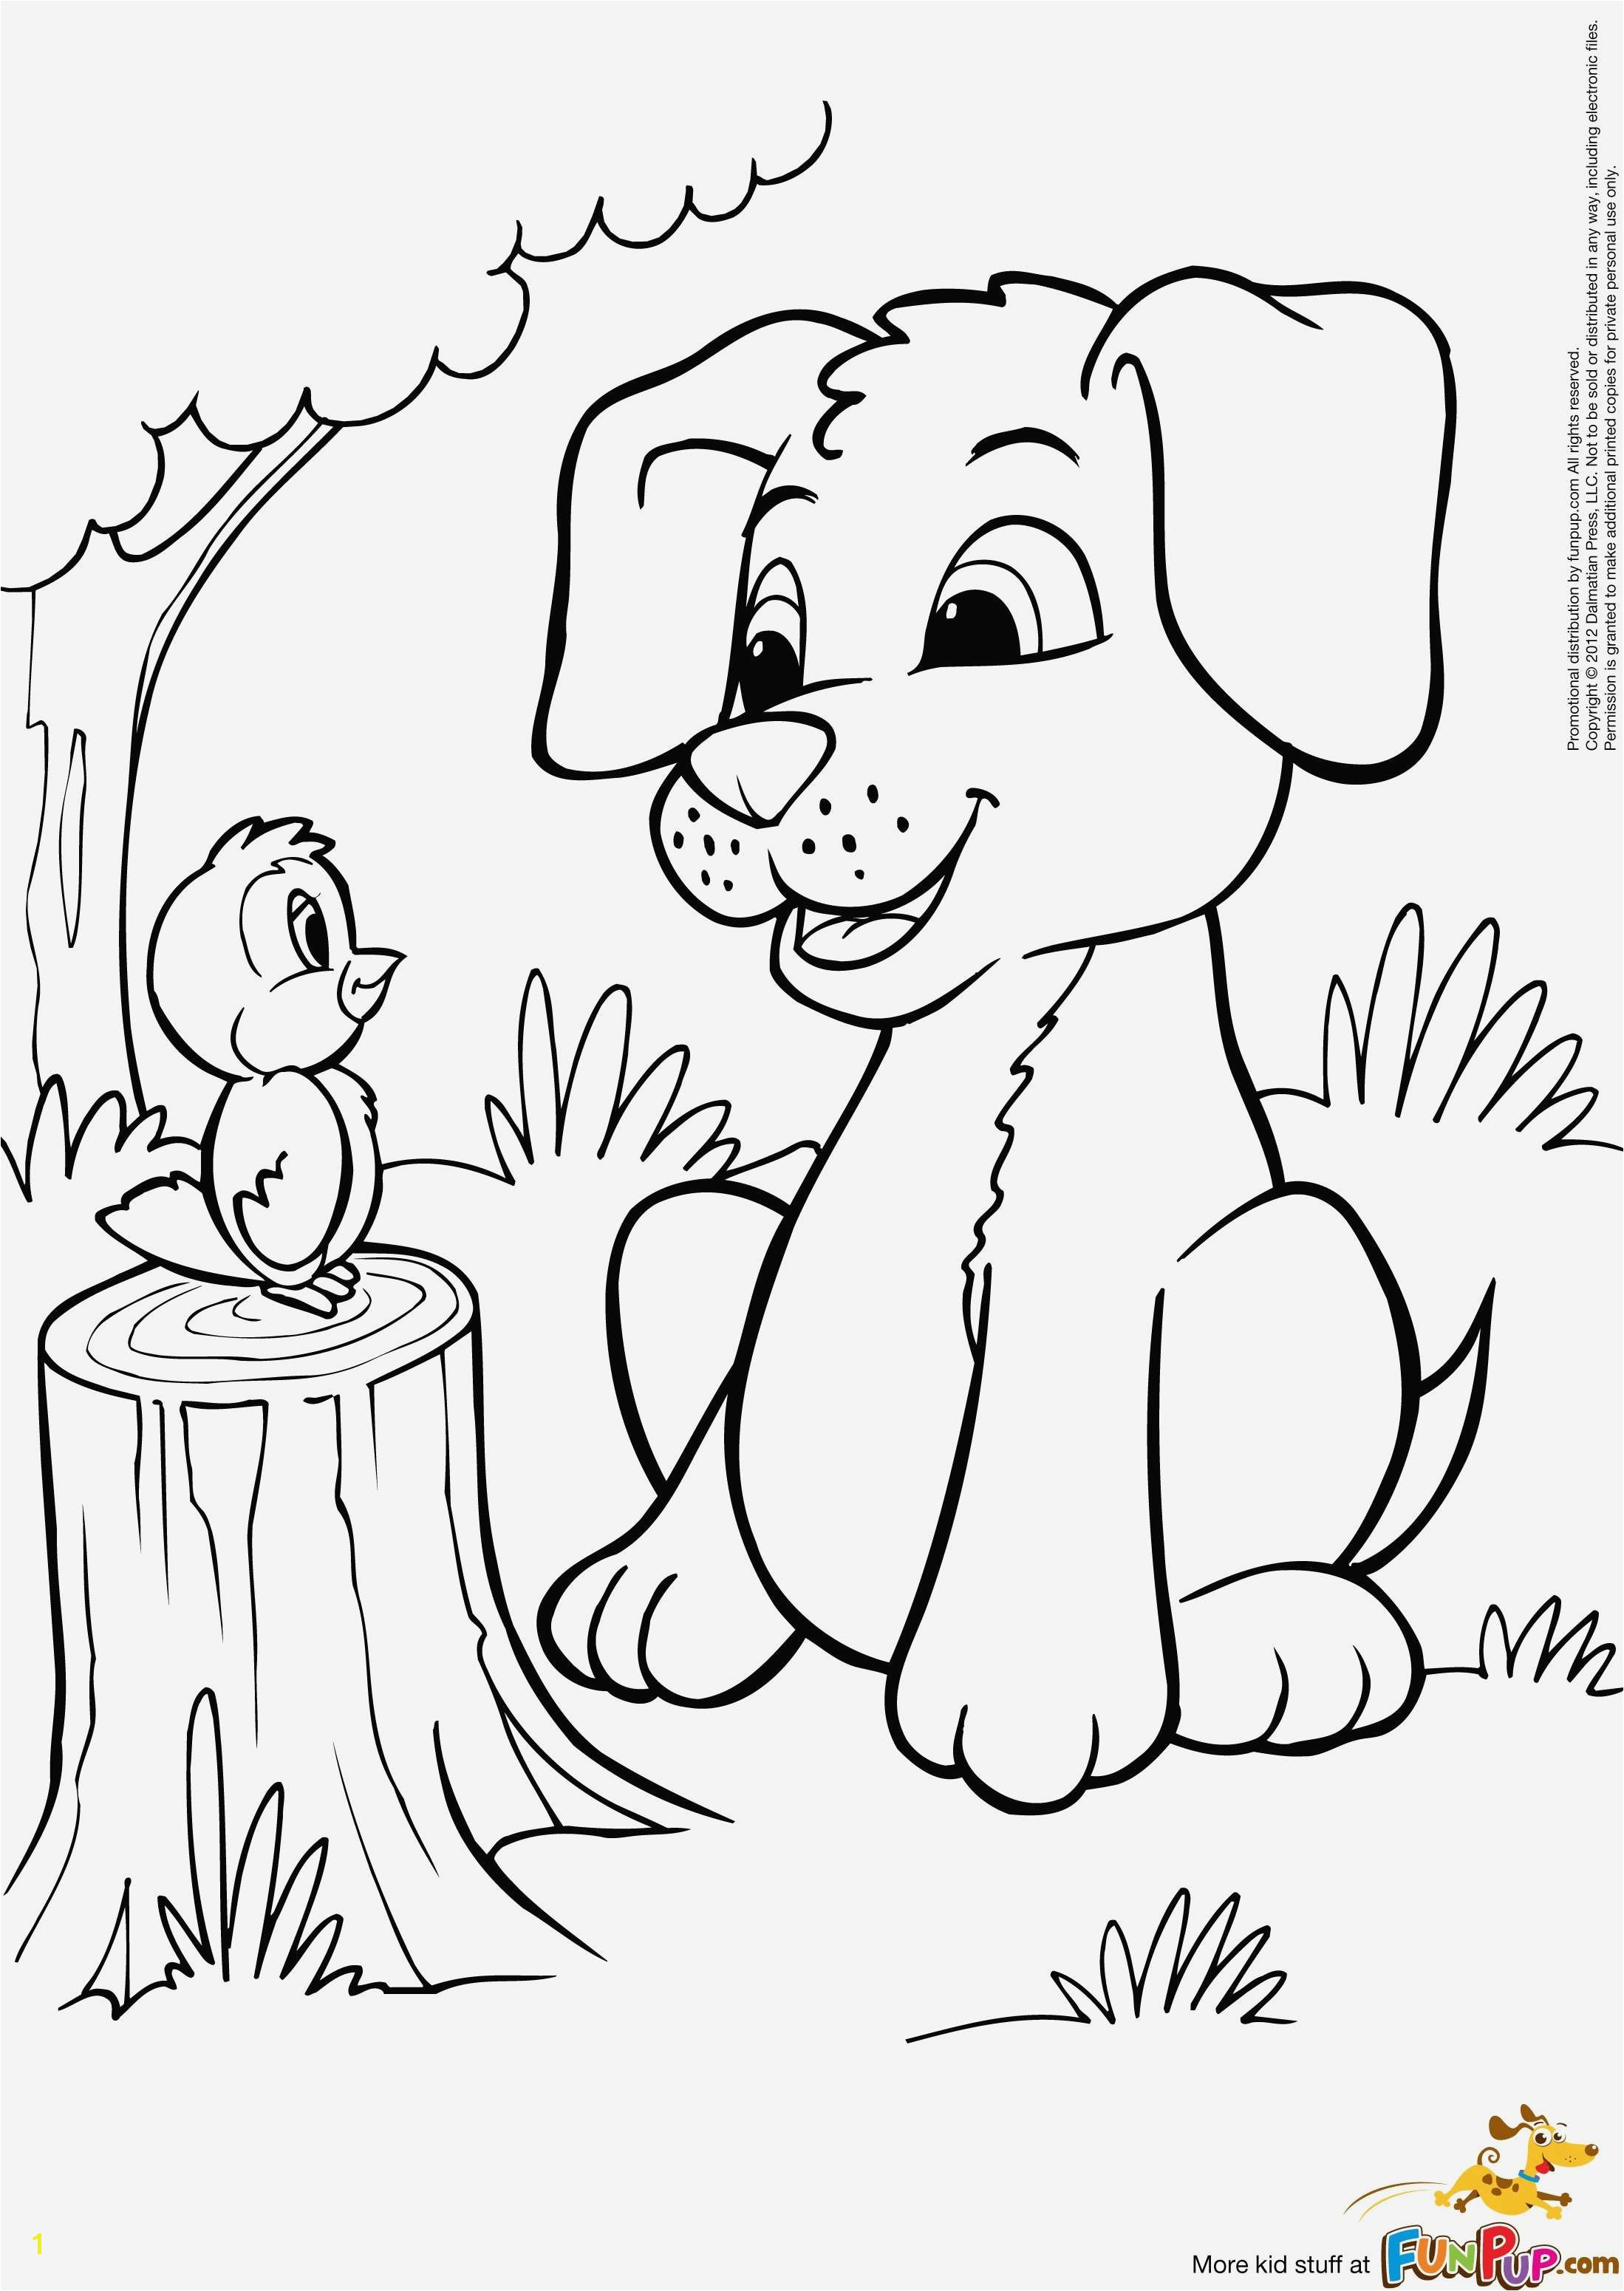 Best Puppy and Kitten Coloring Pages Unique Fresh Appealing Printable Od Dog Coloring Pages Colouring for